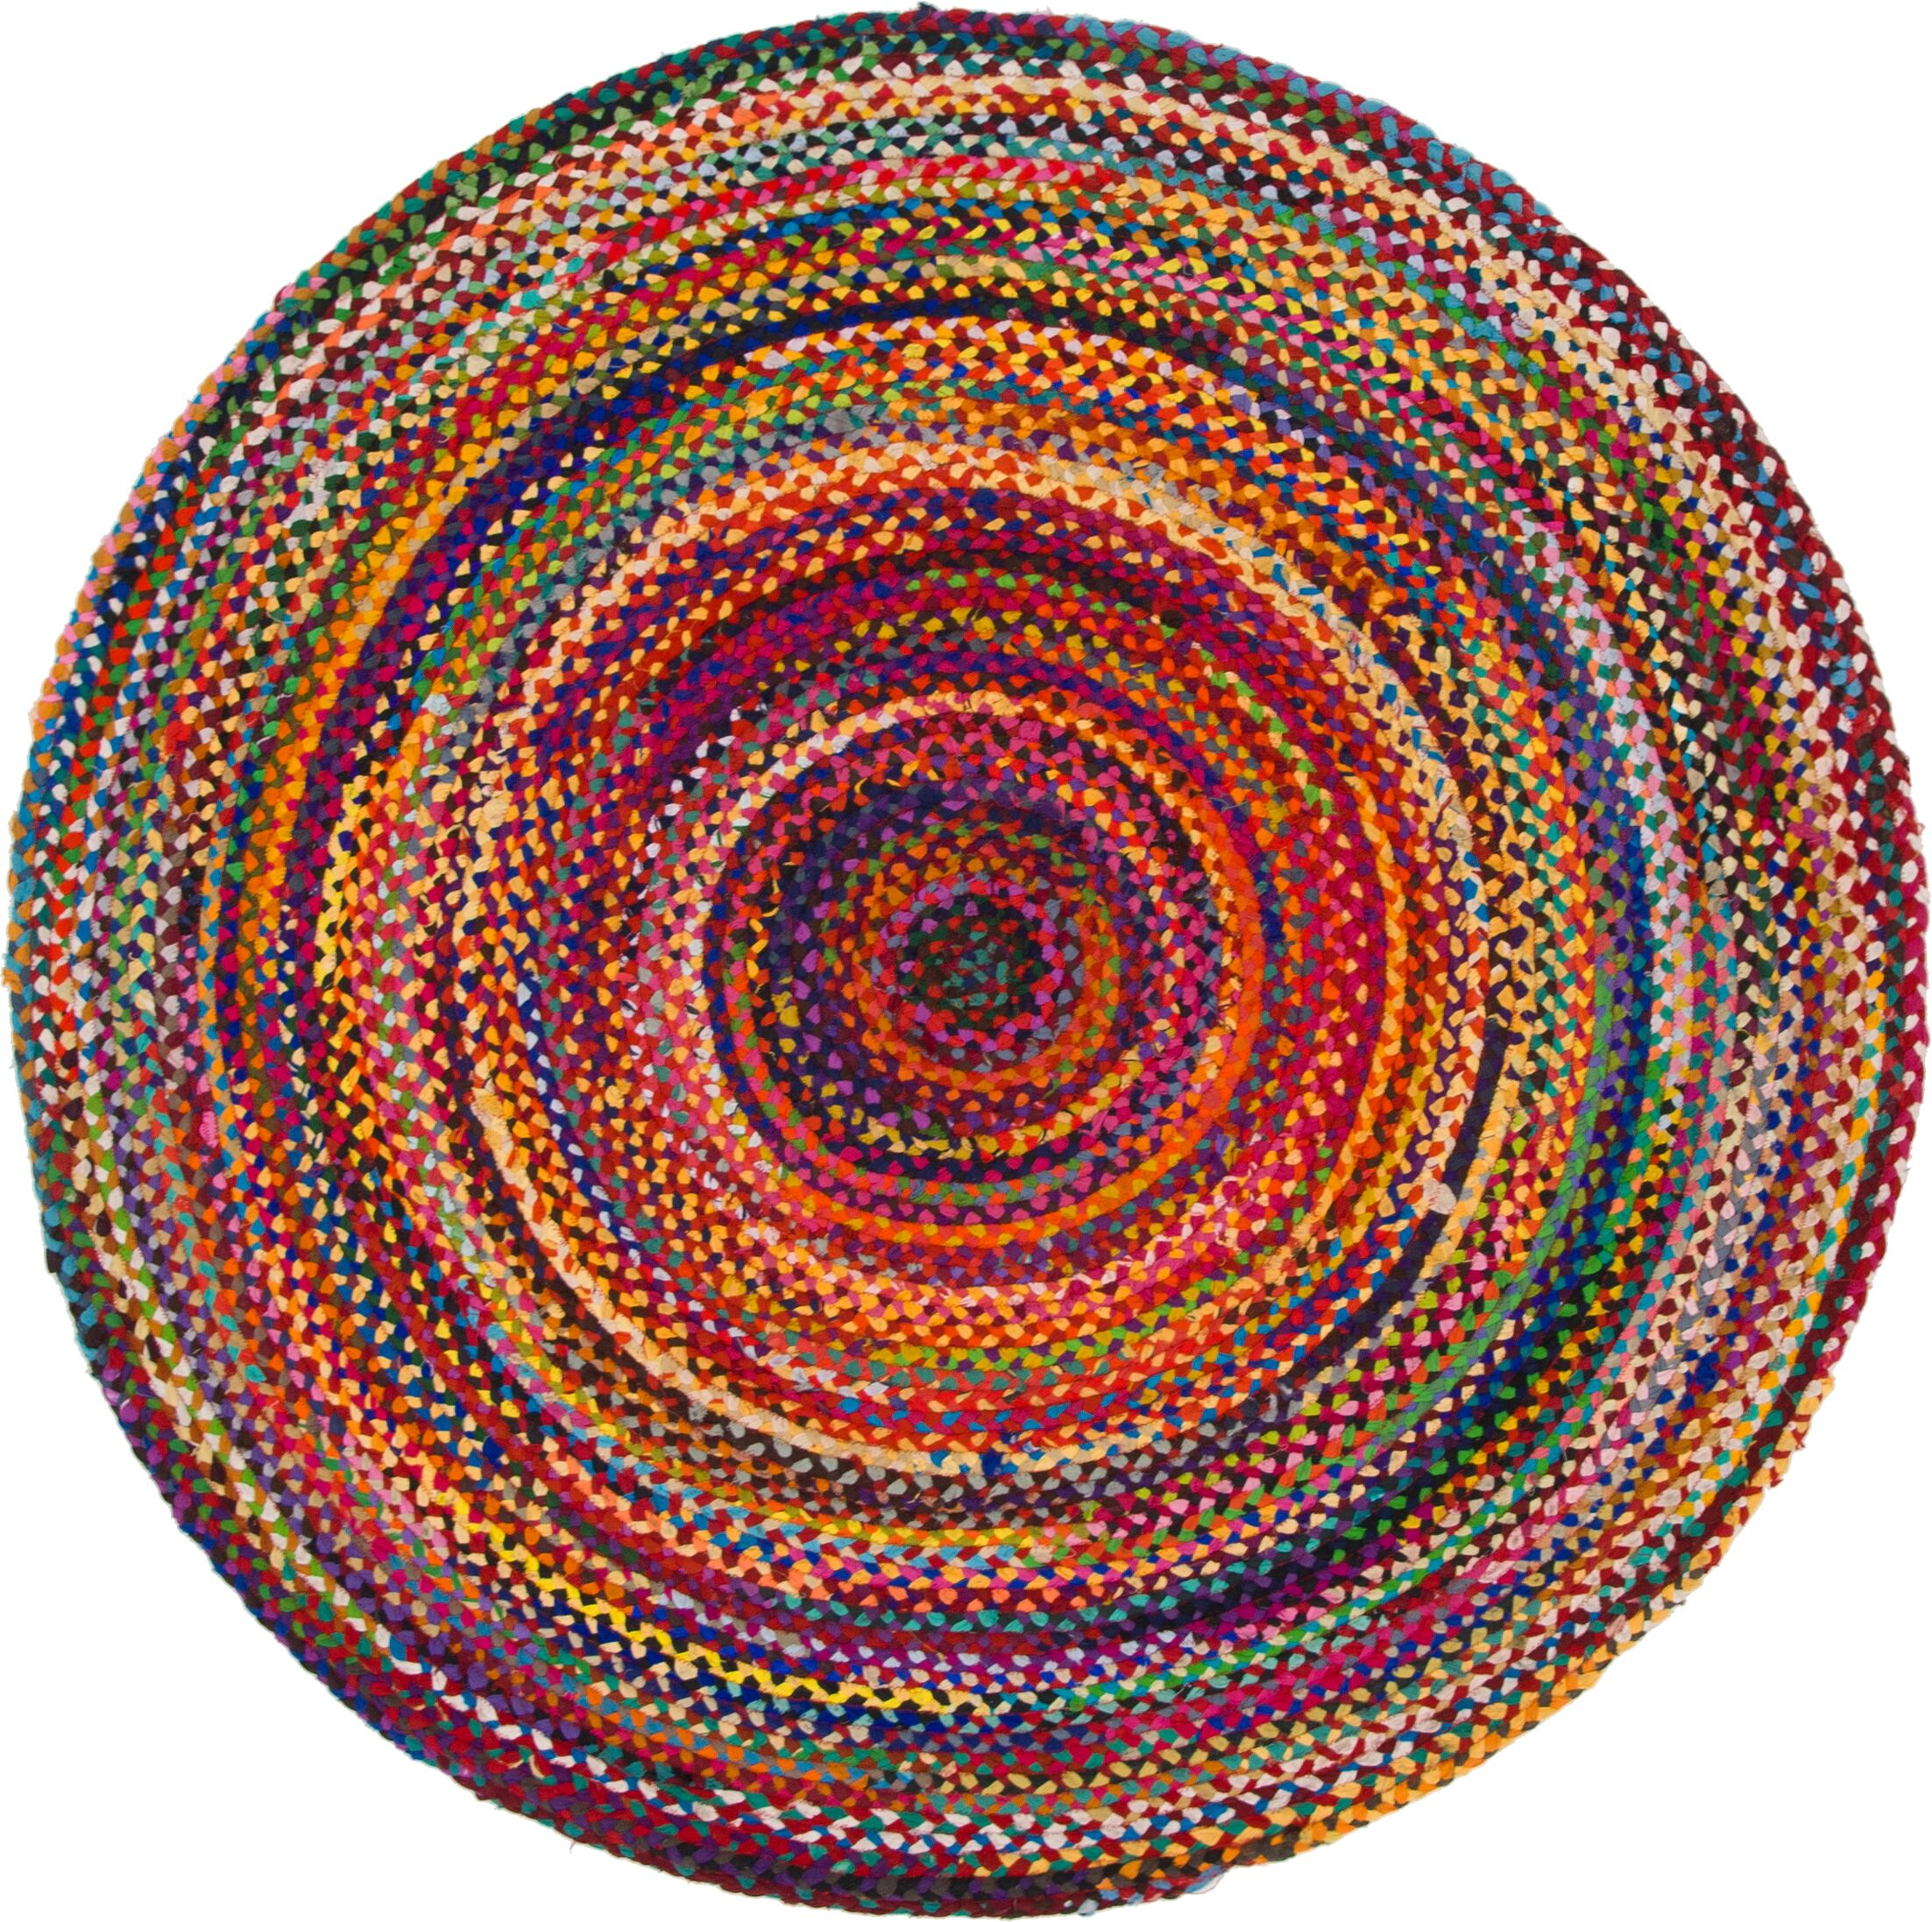 Partee Hand-Braided Red Area Rug Rug Size: Round 6' x 6'